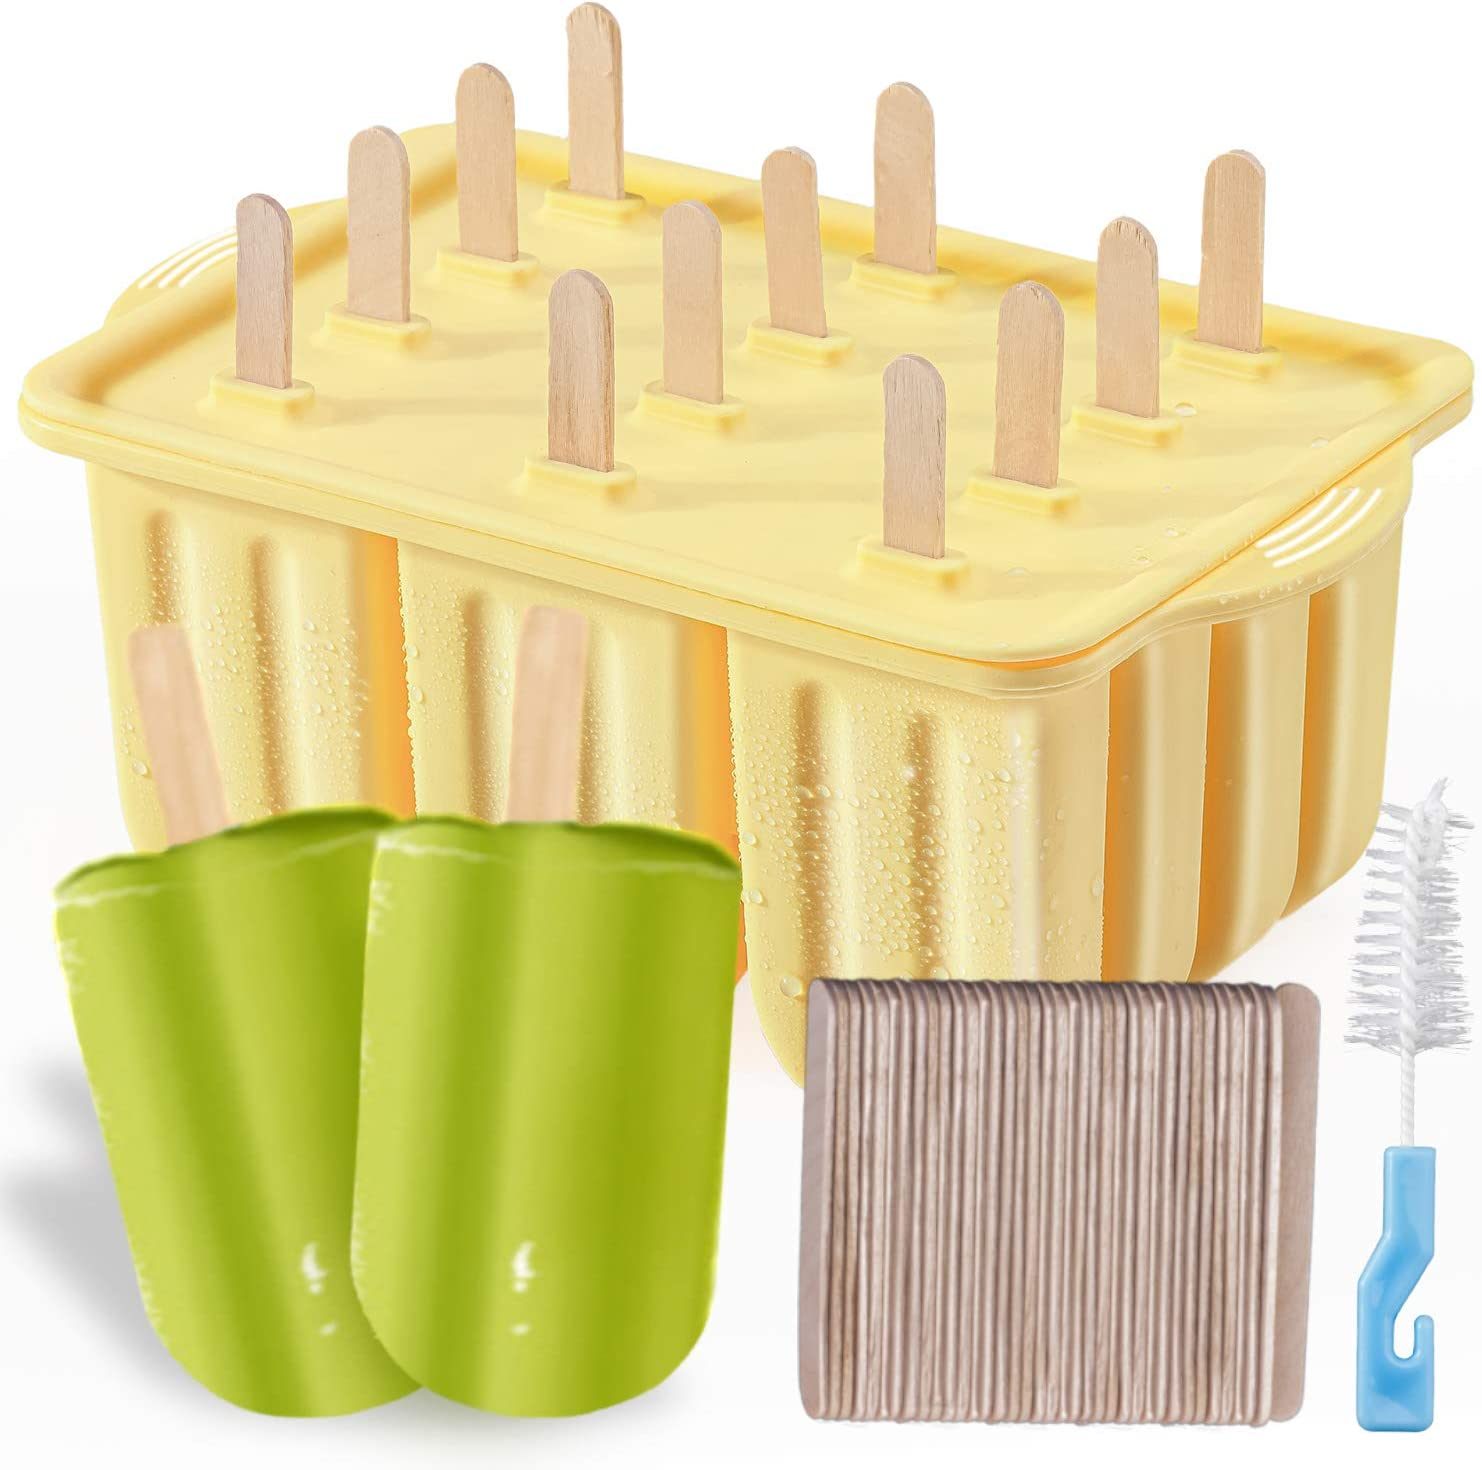 Popsicle Molds Kit, MEETRUE 12 Pieces Silicone Popsicle Molds Easy-Release BPA-free Popsicle Maker Molds Ice Pop Molds Homemade Popsicle Ice Pop Maker with 50PCS Popsicle Sticks+Cleaning Brush, Green